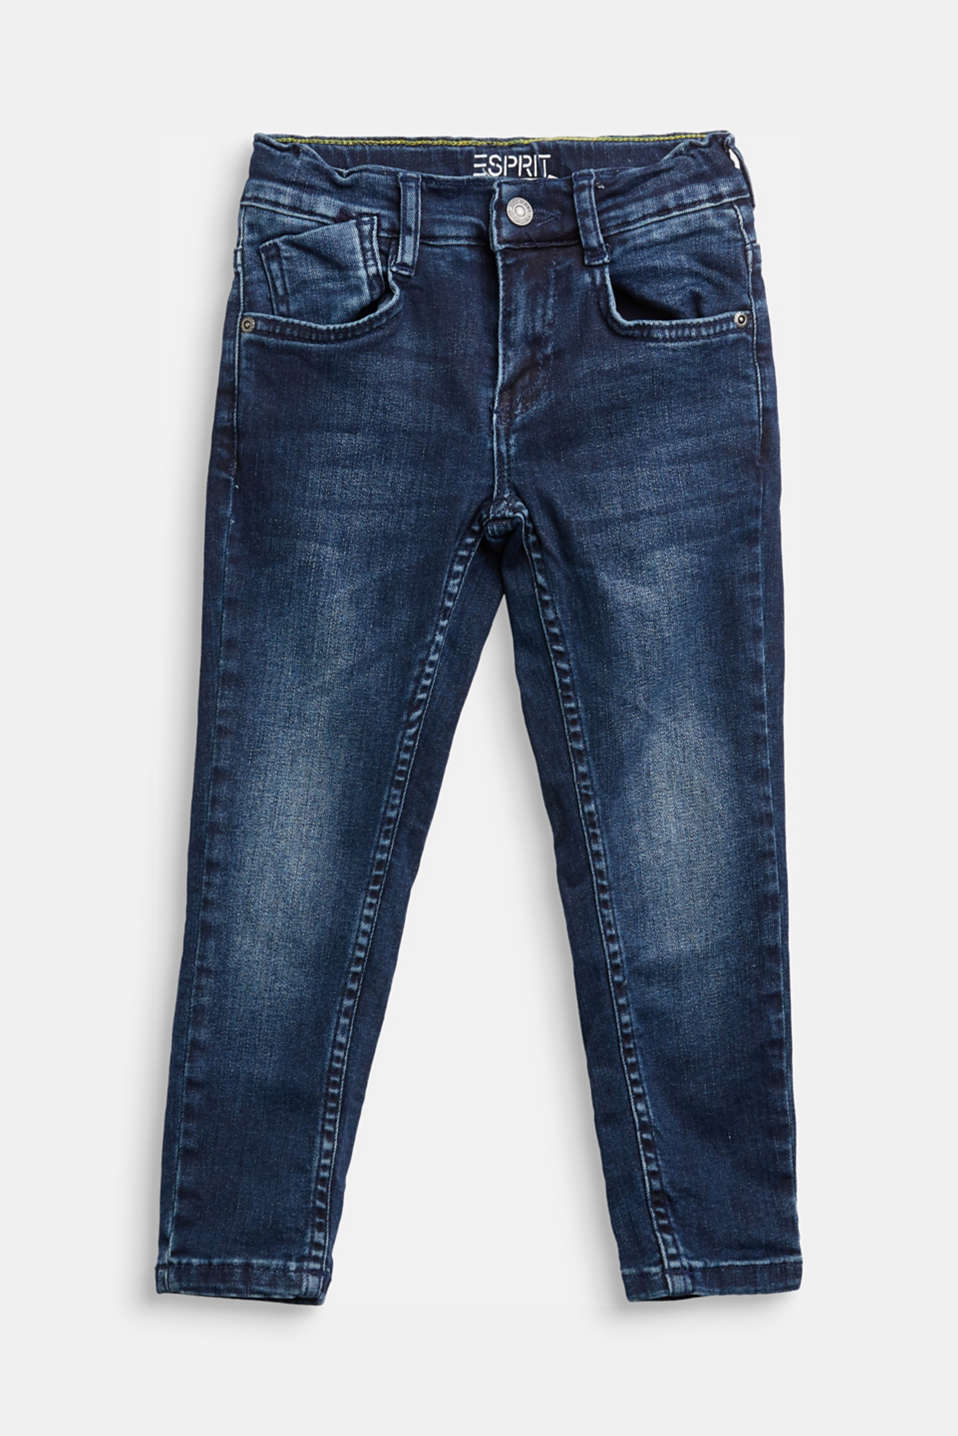 Esprit - Recycled: stretch jeans with an adjustable waistband